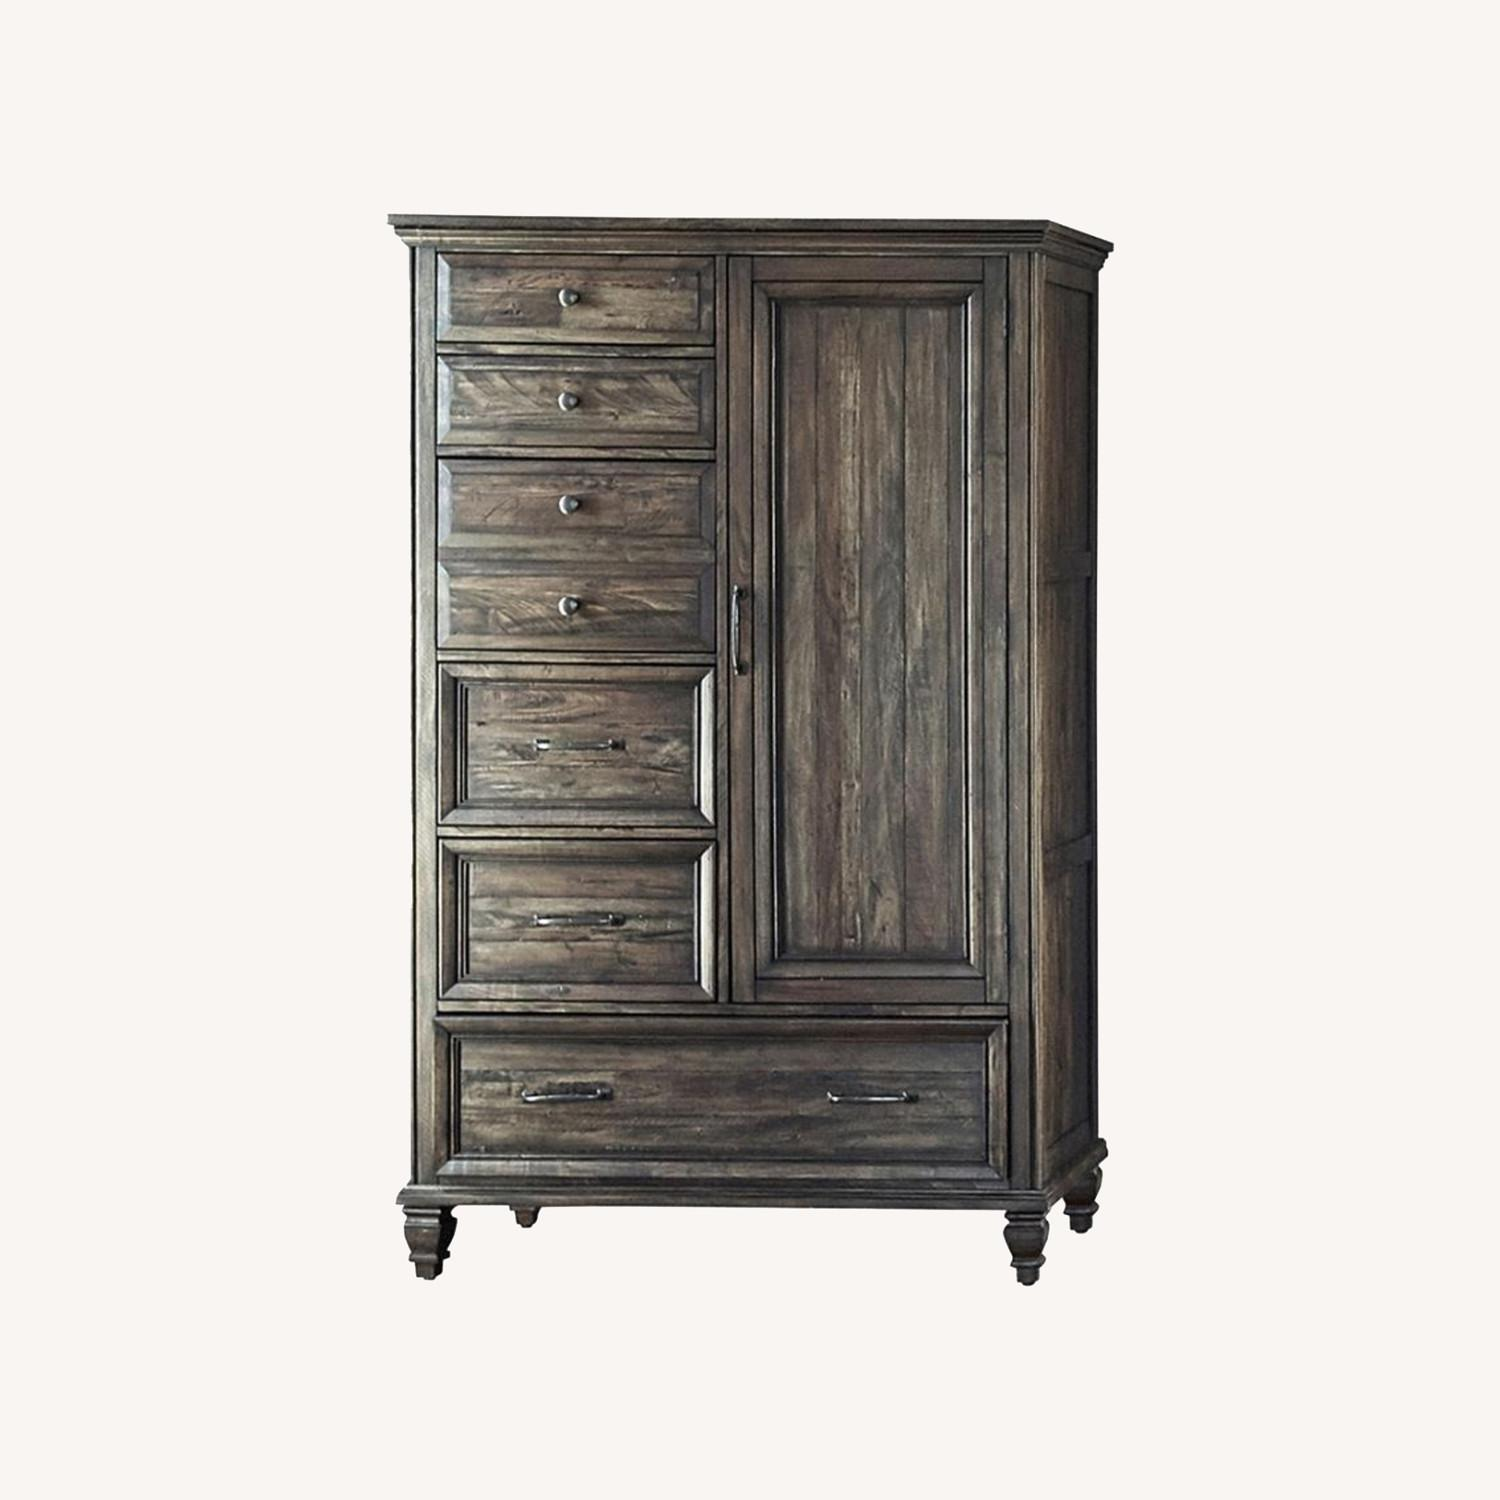 Door Chest In Weathered Burnished Brown Finish - image-4